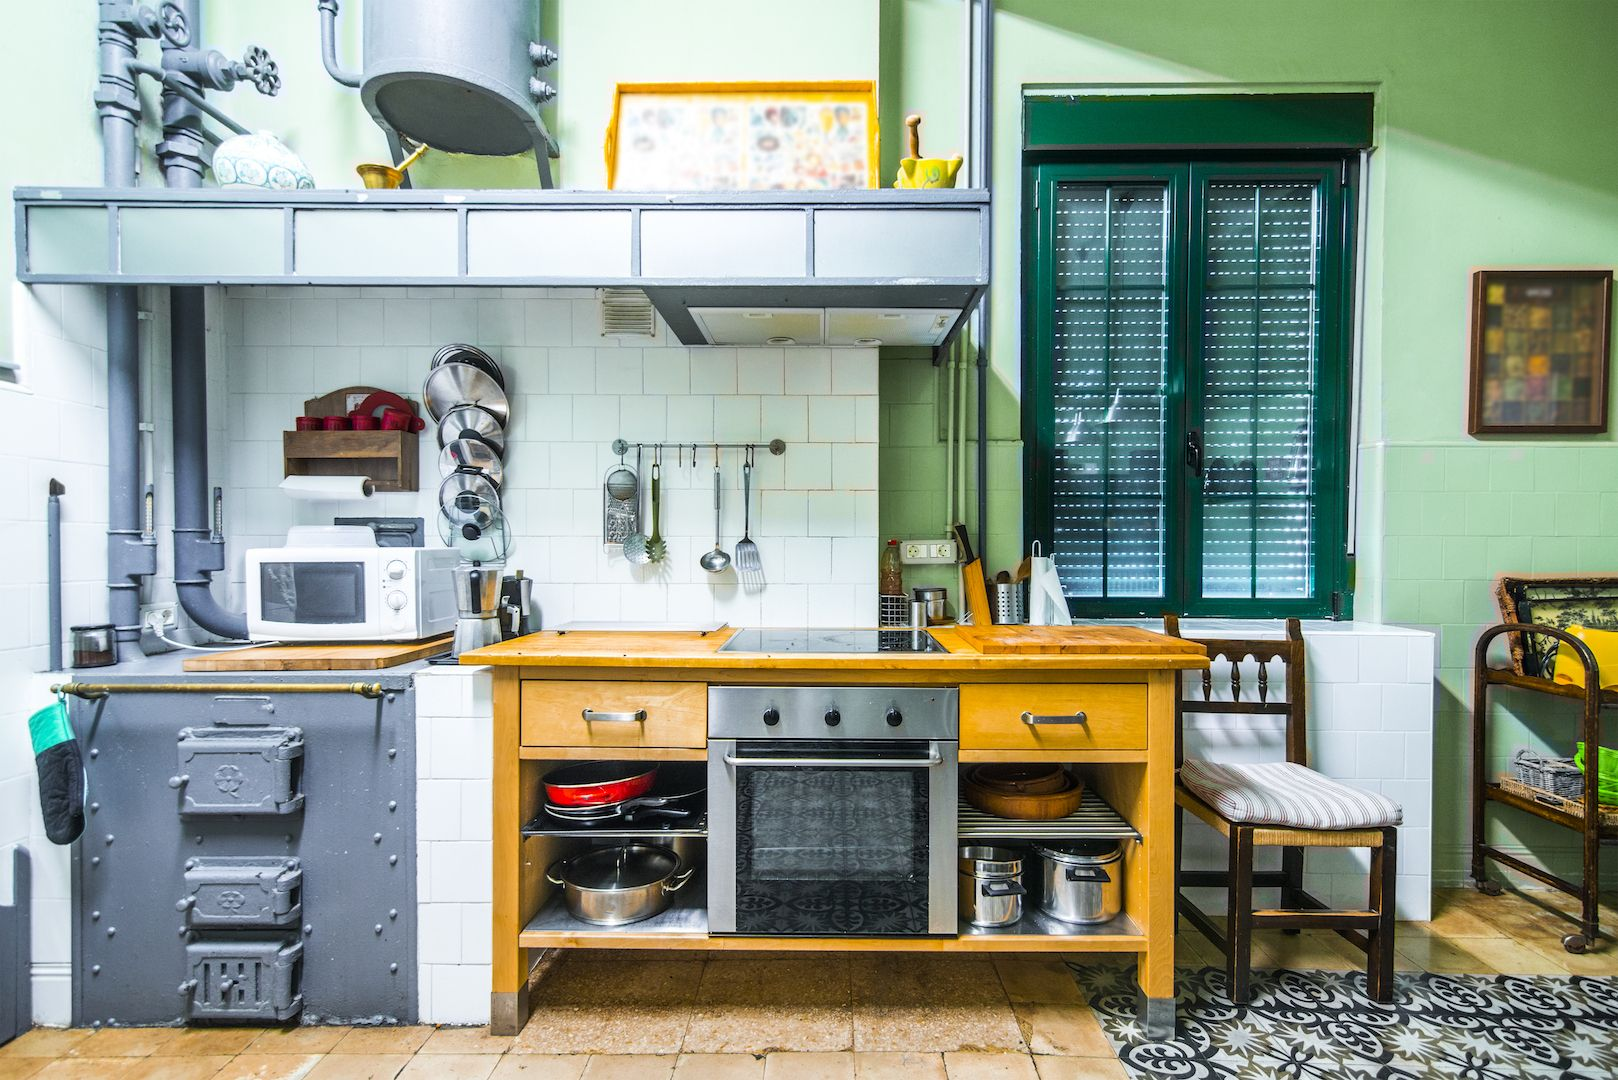 25 of The Coolest Retro Kitchens - Inspire Your Next Home Redo